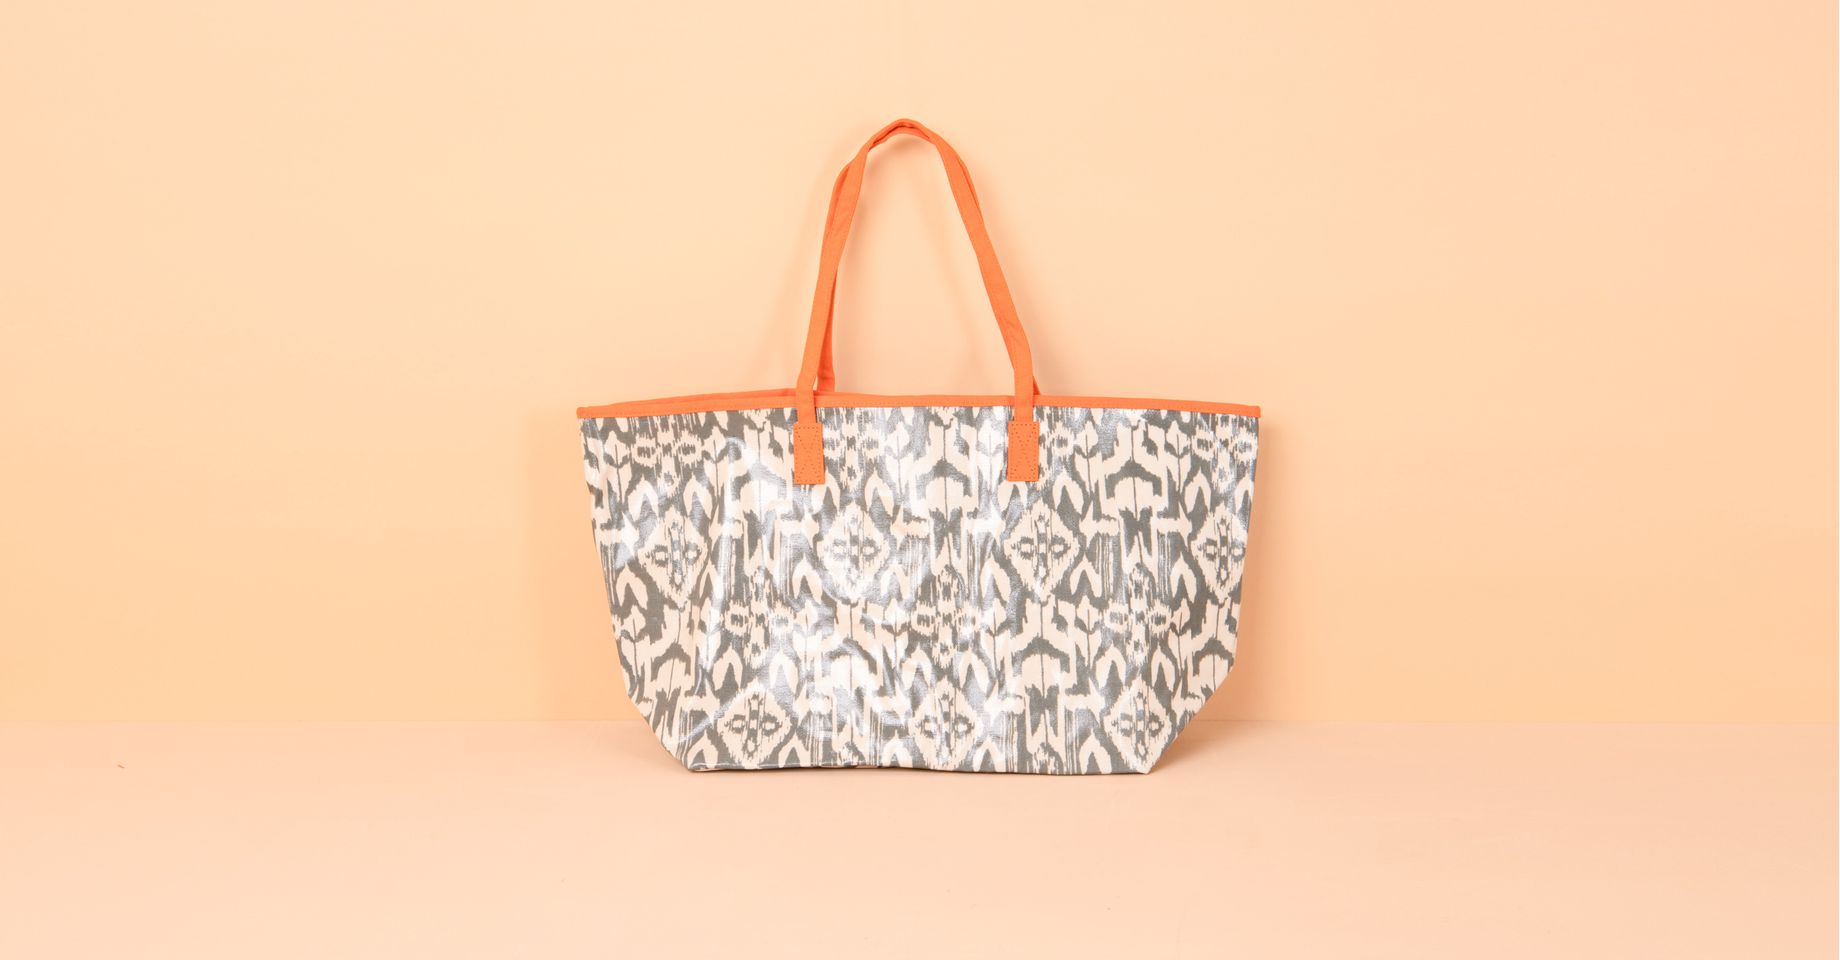 020104017_011_2-SHOPPING-BAG-IKAT